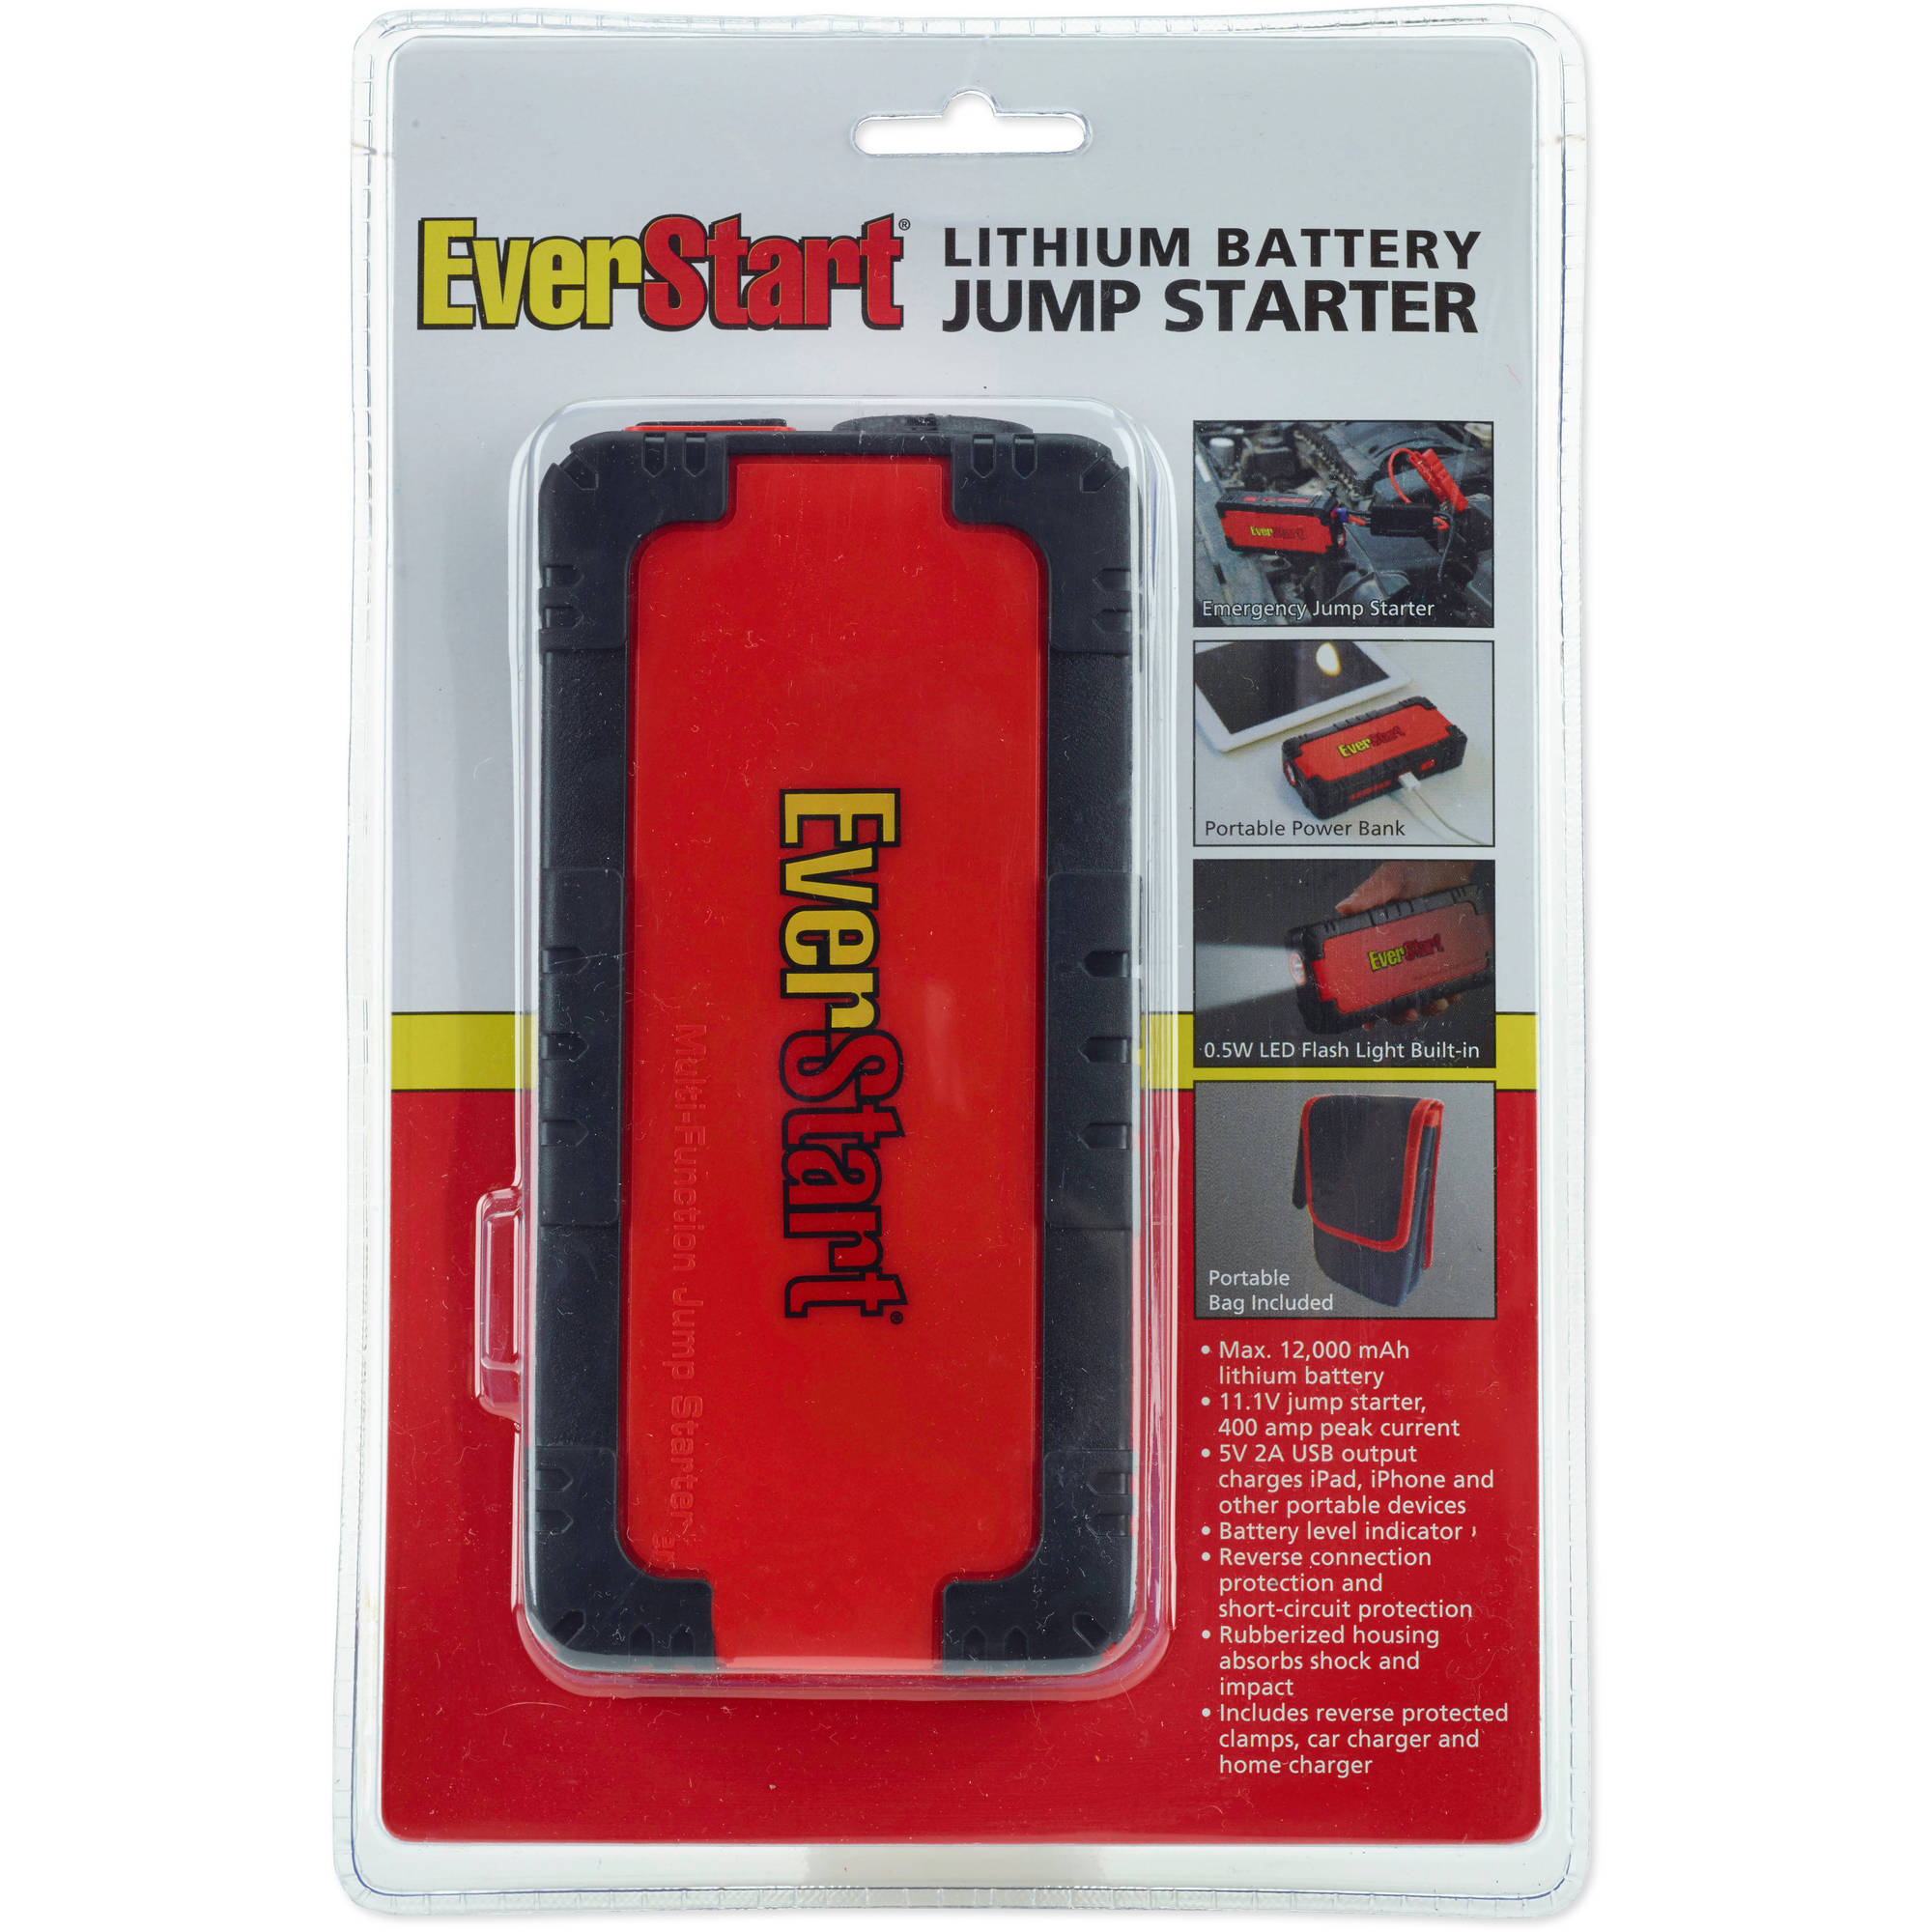 6cf6581a f69e 4954 a9ee fb8317c1d2c6_1.fd6ee3bb2385526a06e8dc30515547b2 everstart multi function jump starter & battery charger everstart battery charger wiring diagram at reclaimingppi.co